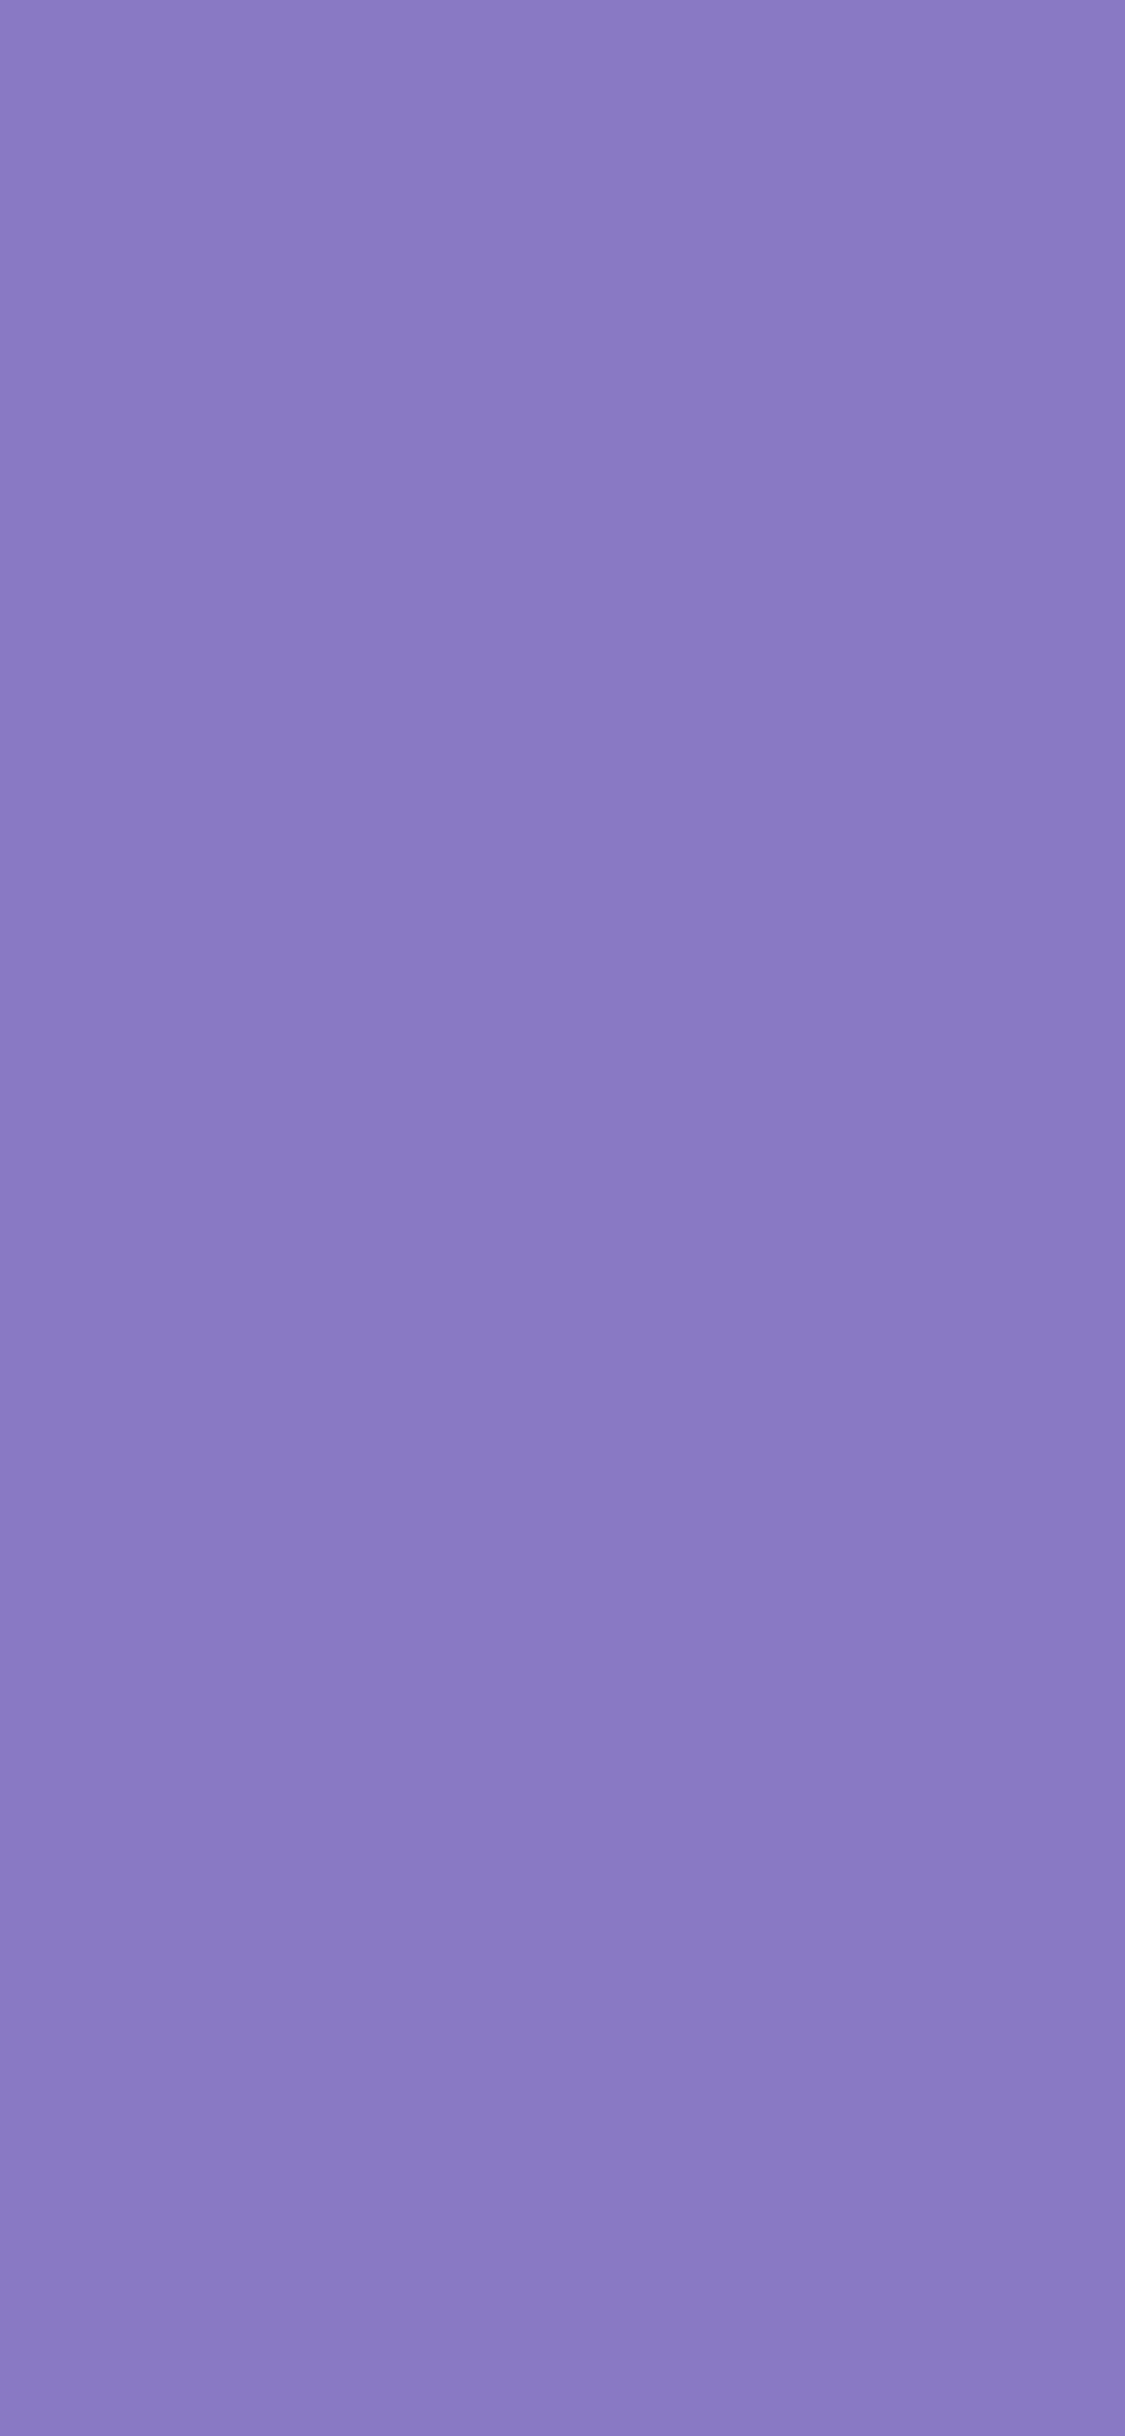 1125x2436 Ube Solid Color Background